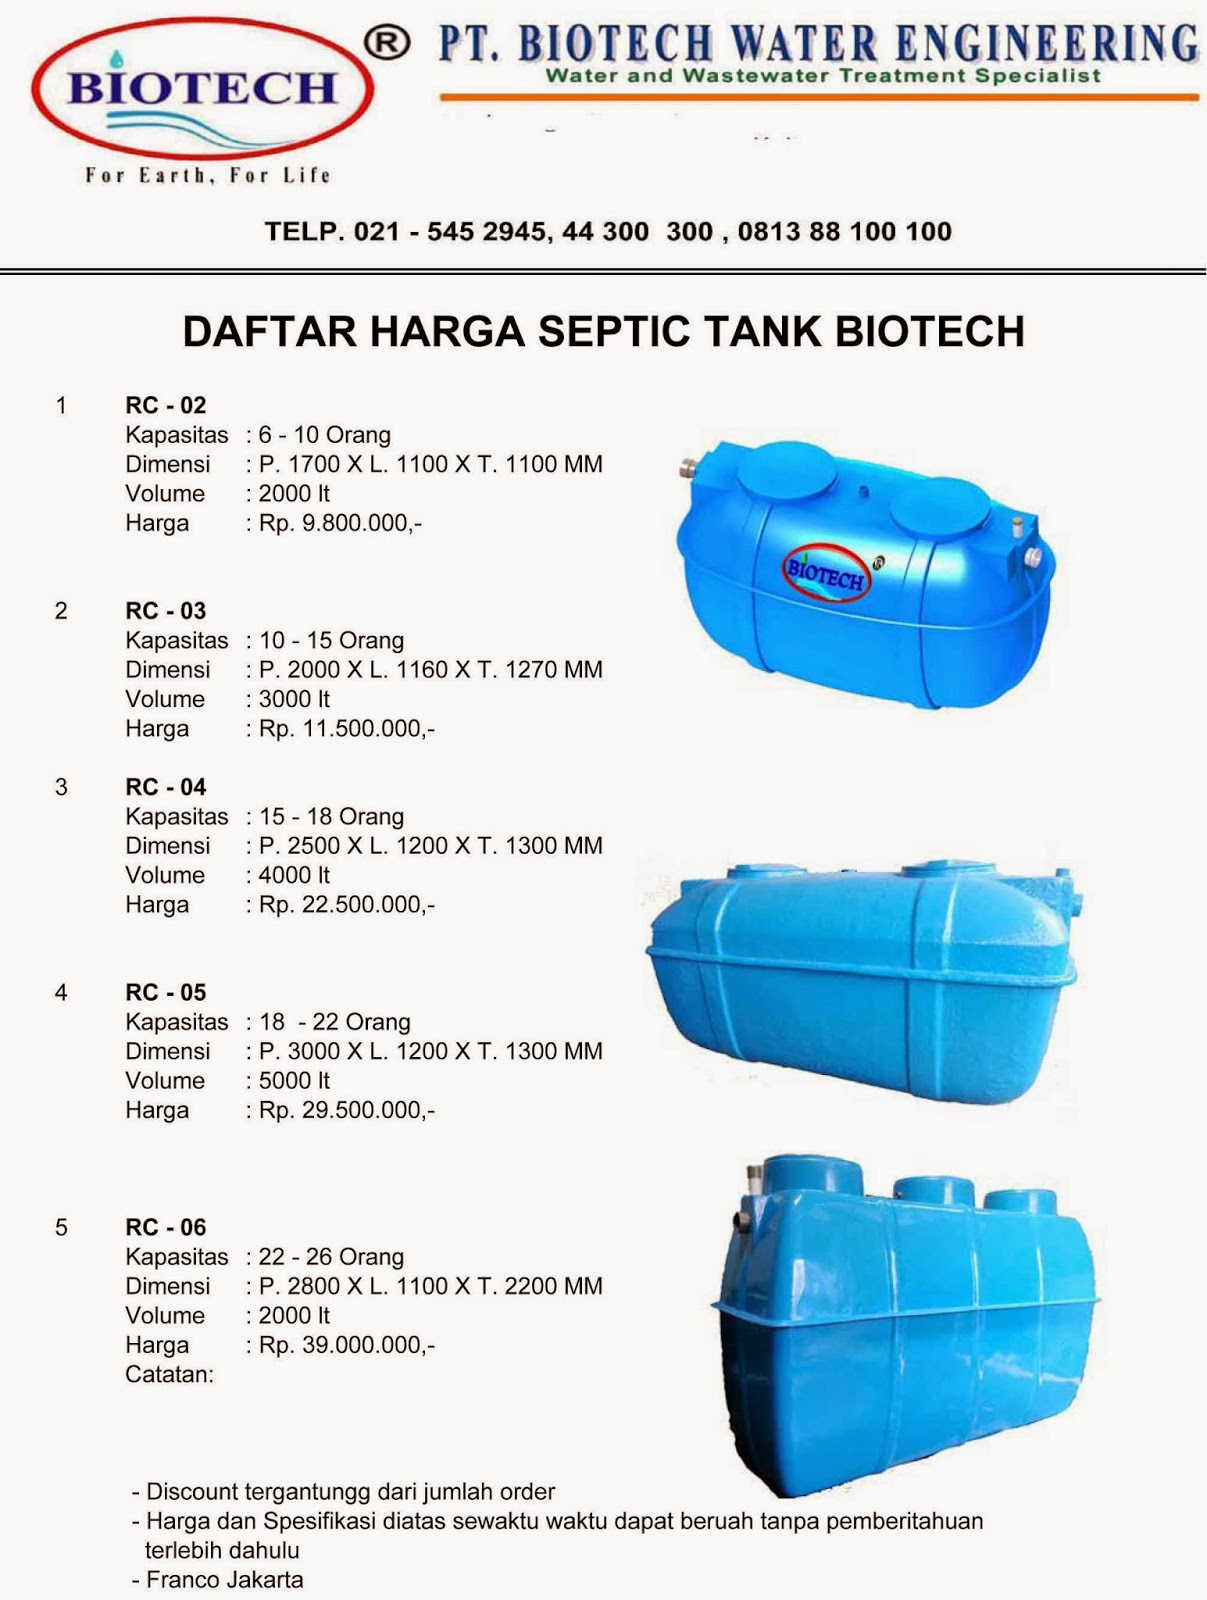 price list biotech rc, stp, ipal, flexible toilet fibreglass